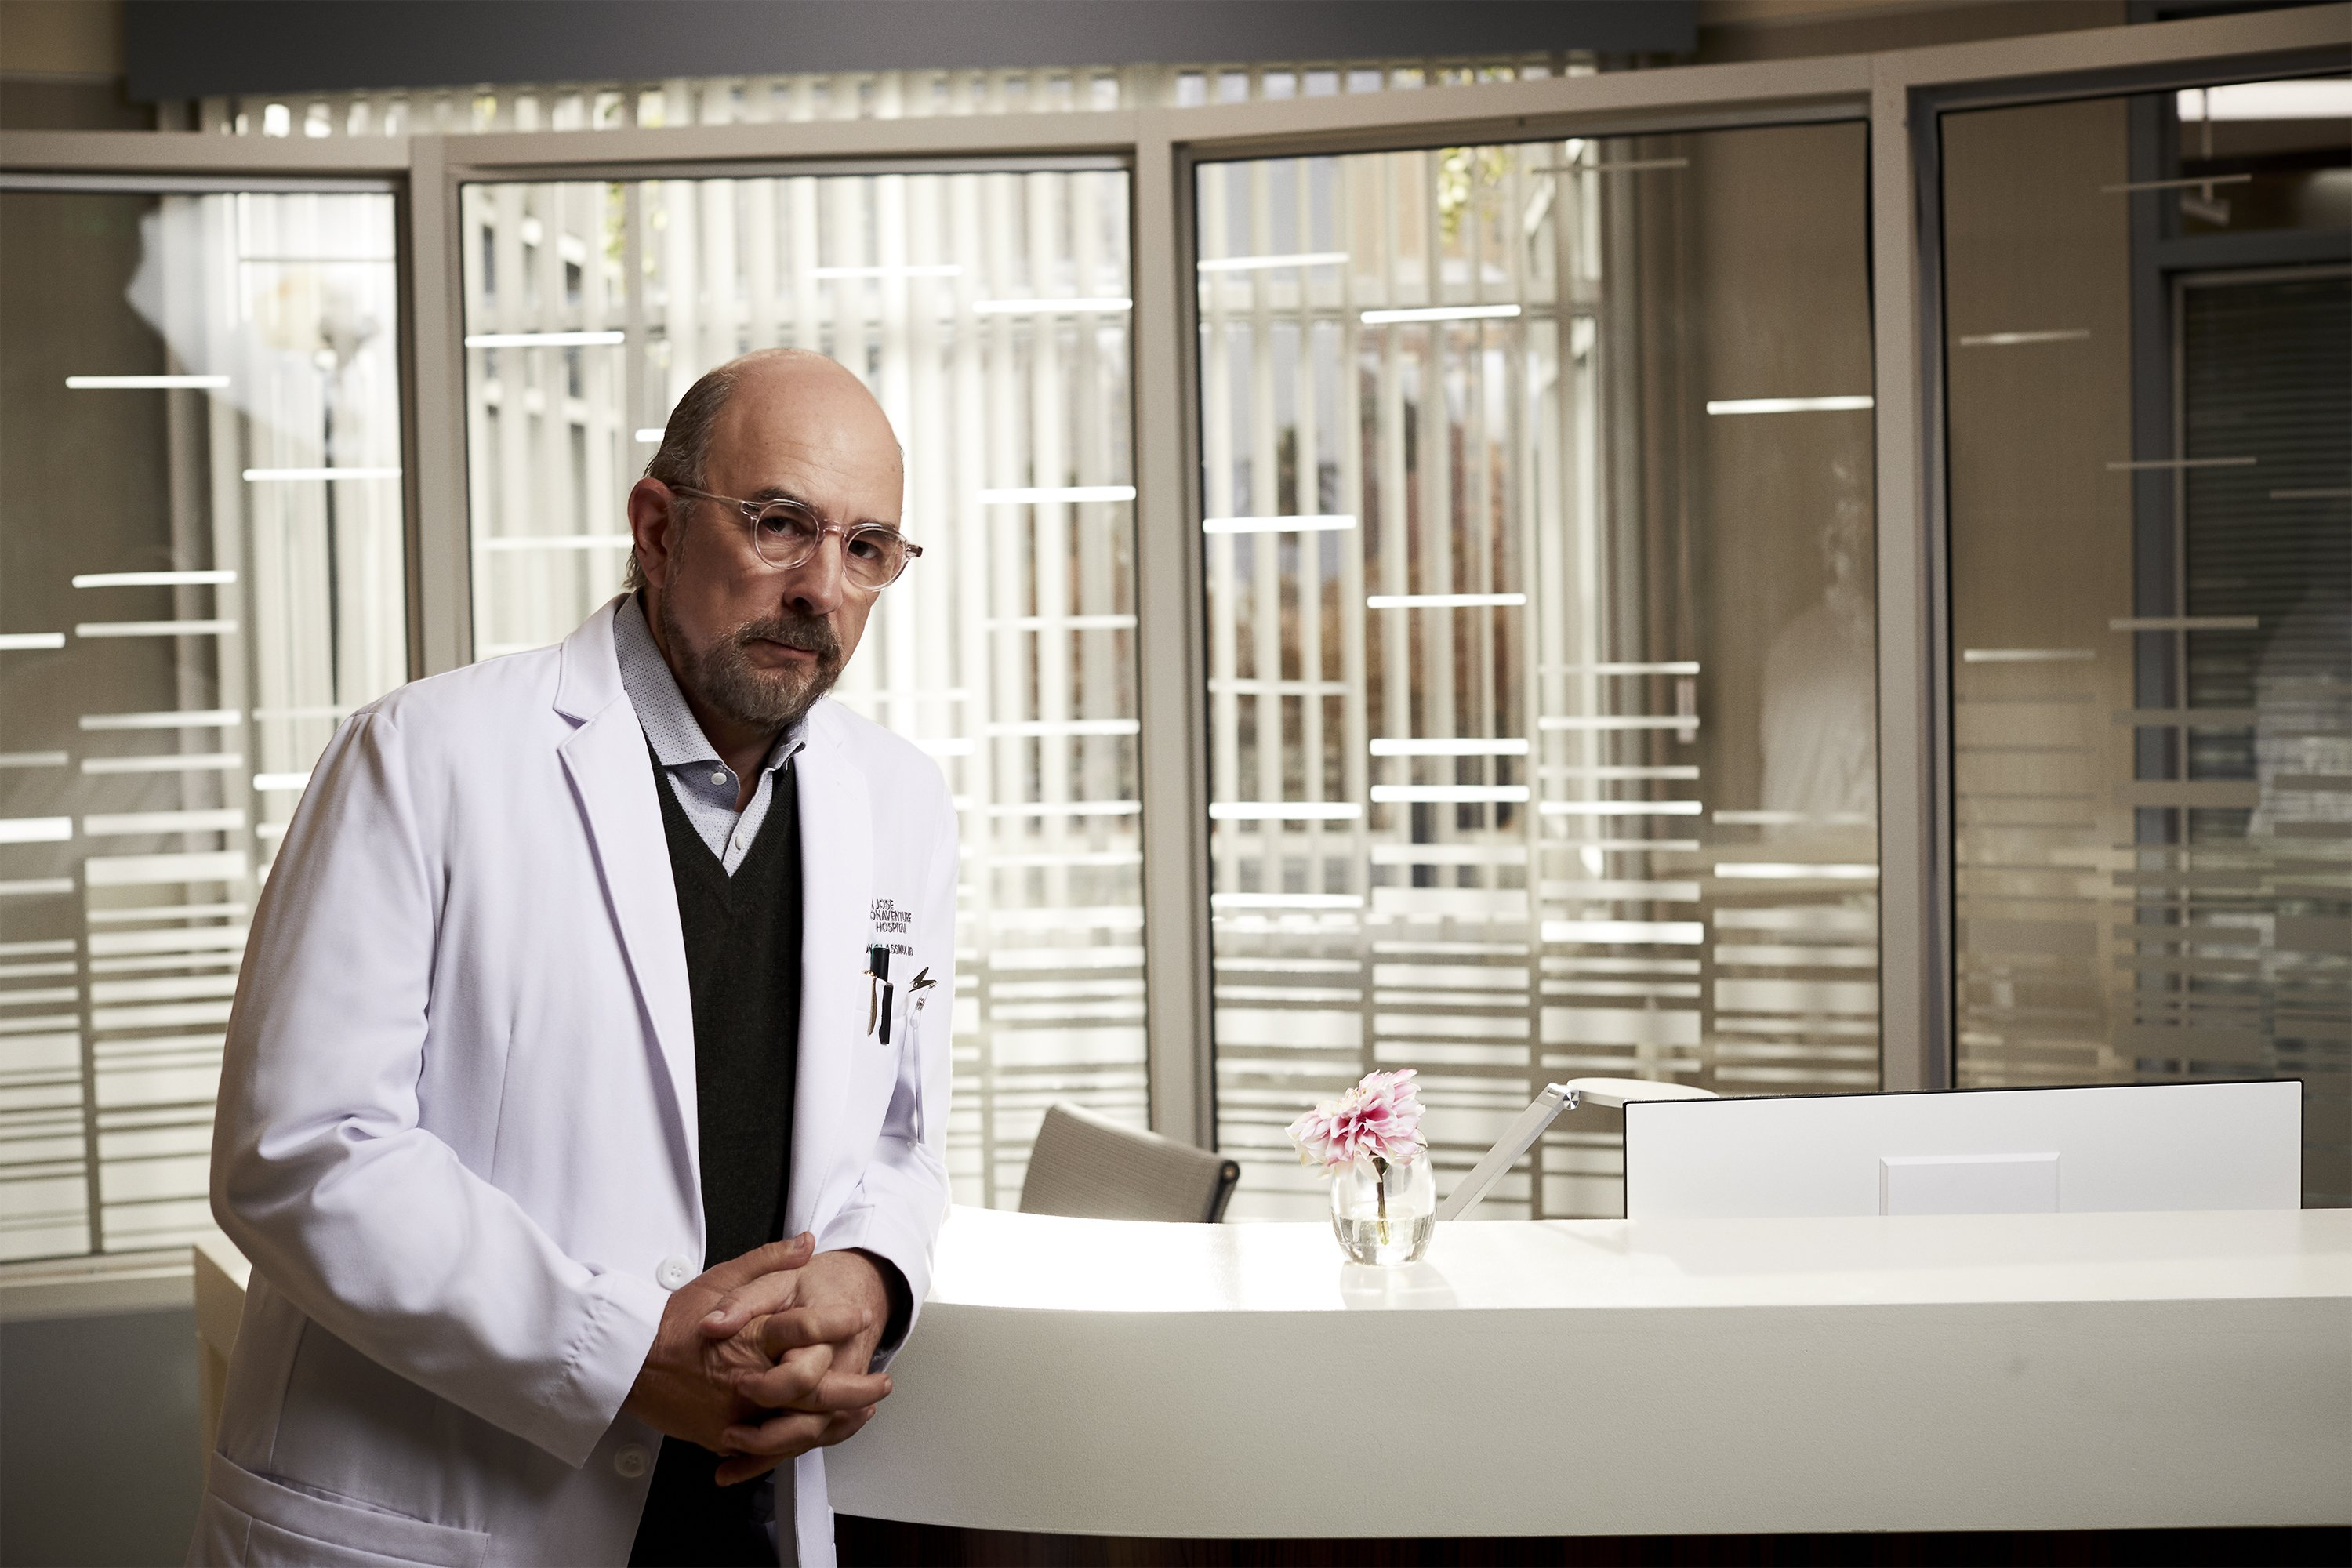 """ABC's """"The Good Doctor"""" stars Richard Schiff as Dr. Aaron Glassman.   Source: Getty Images,"""